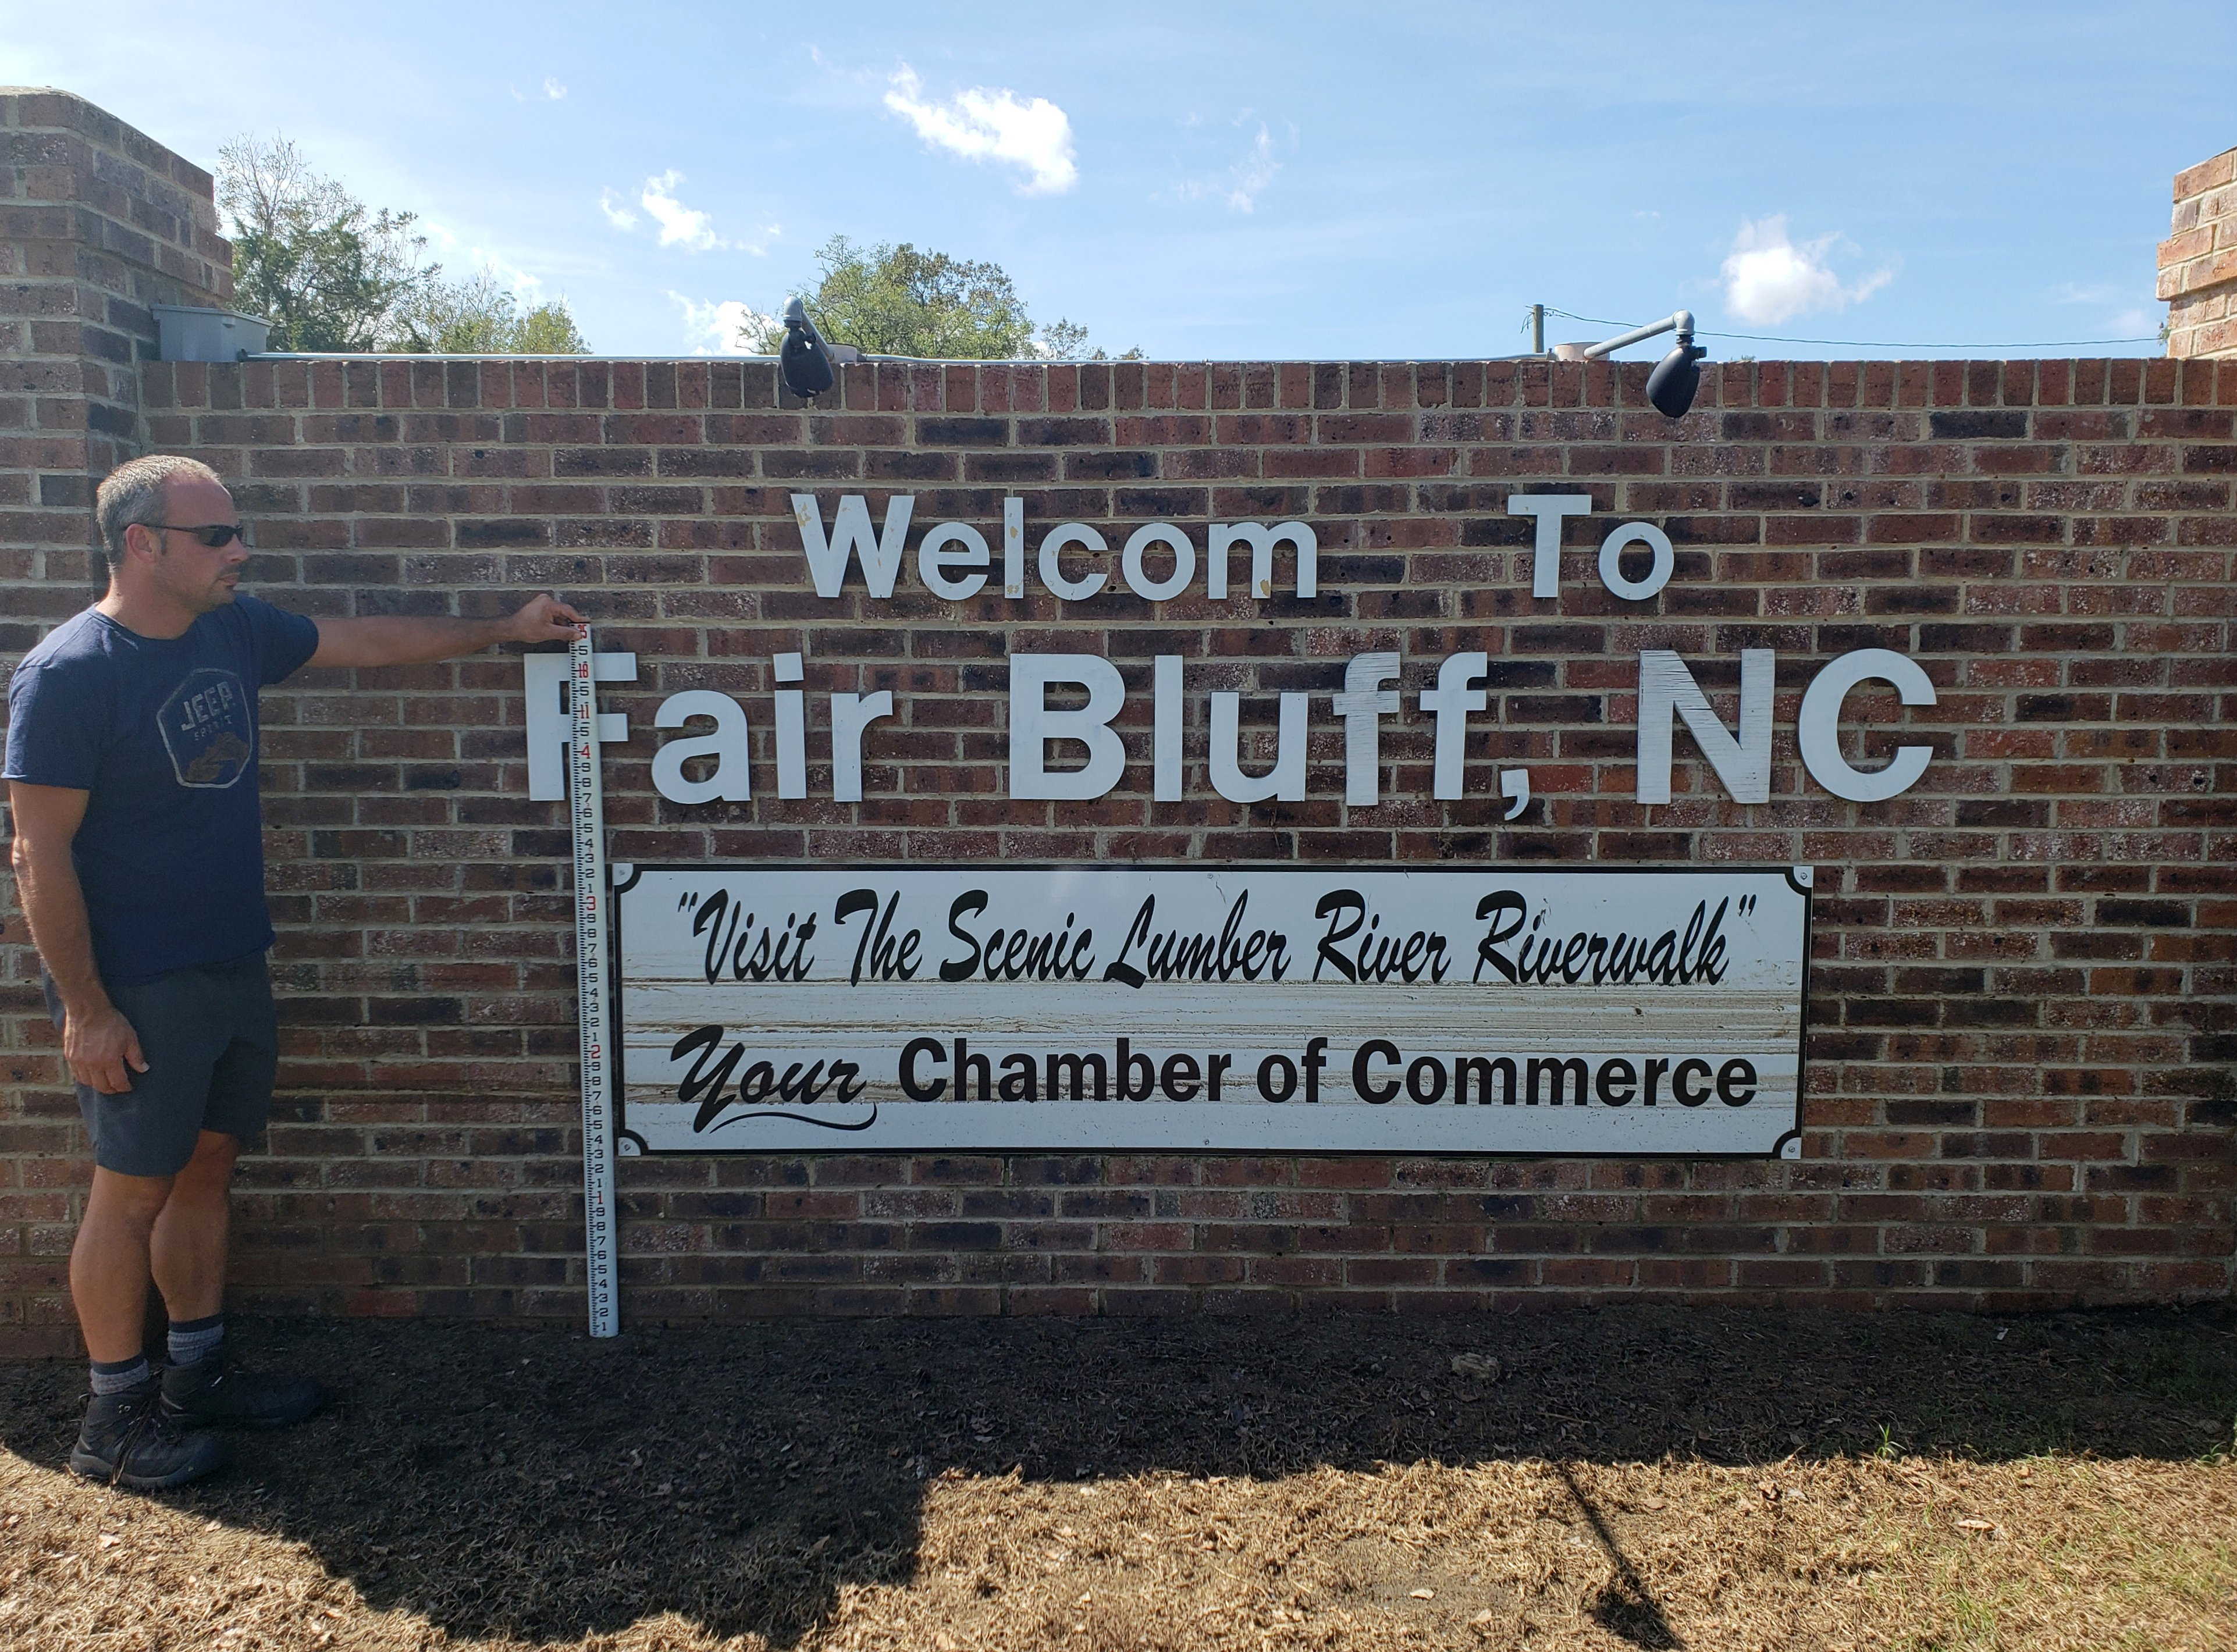 Our survey crew found a high water mark 2.5 feet above ground level on the welcome sign to Fair Bluff.